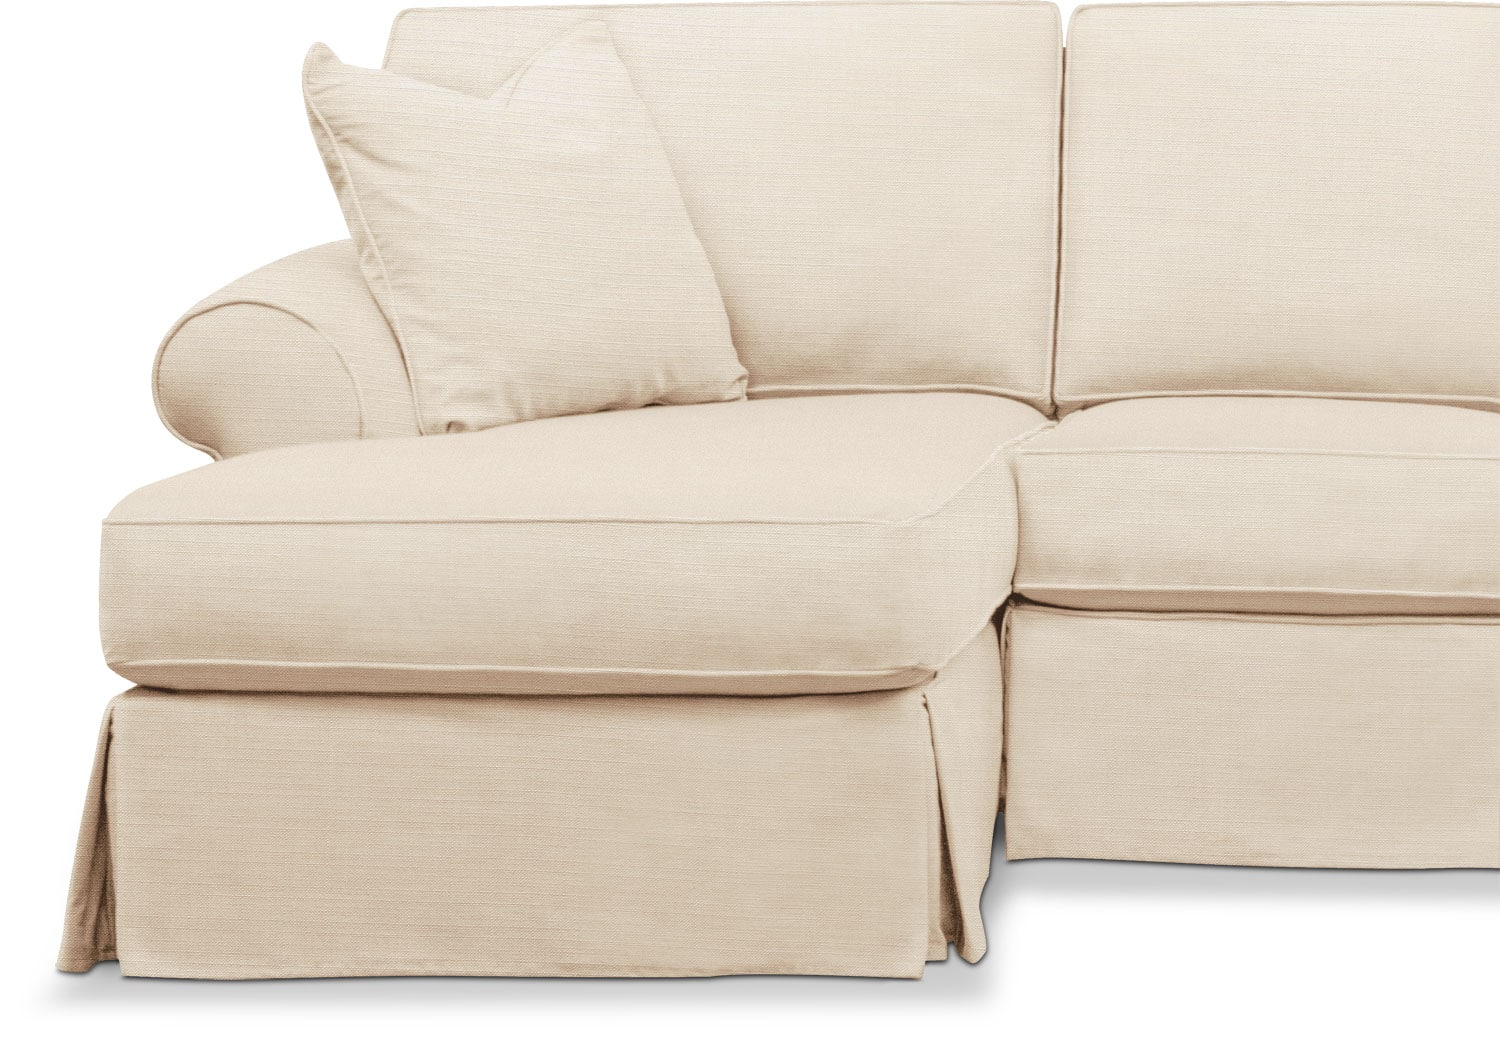 Sawyer 2 Piece Slipcover Sectional With Sofa And Chaise